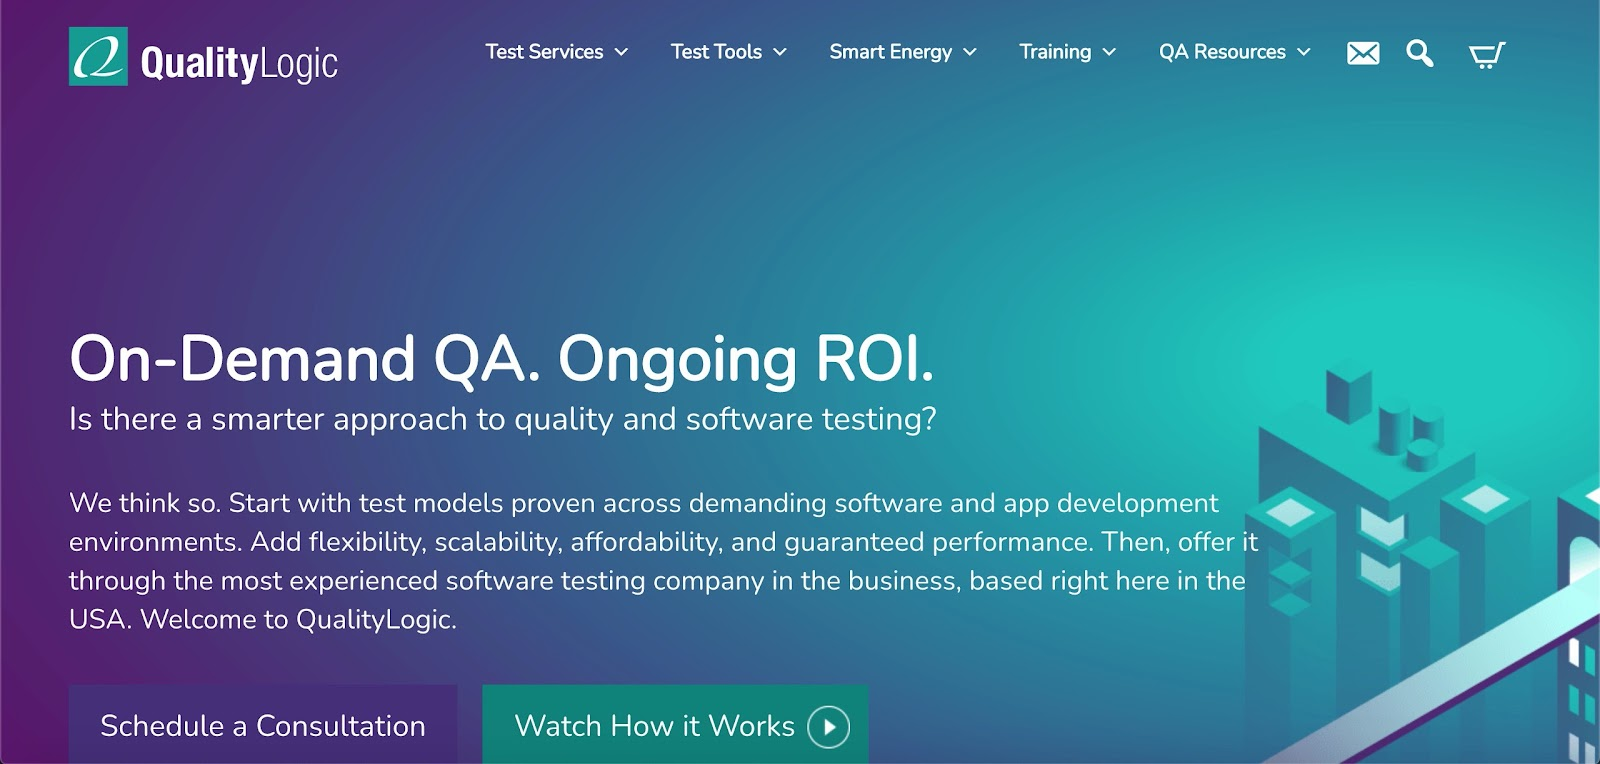 QualityLogic is one of the Software Testing Companies